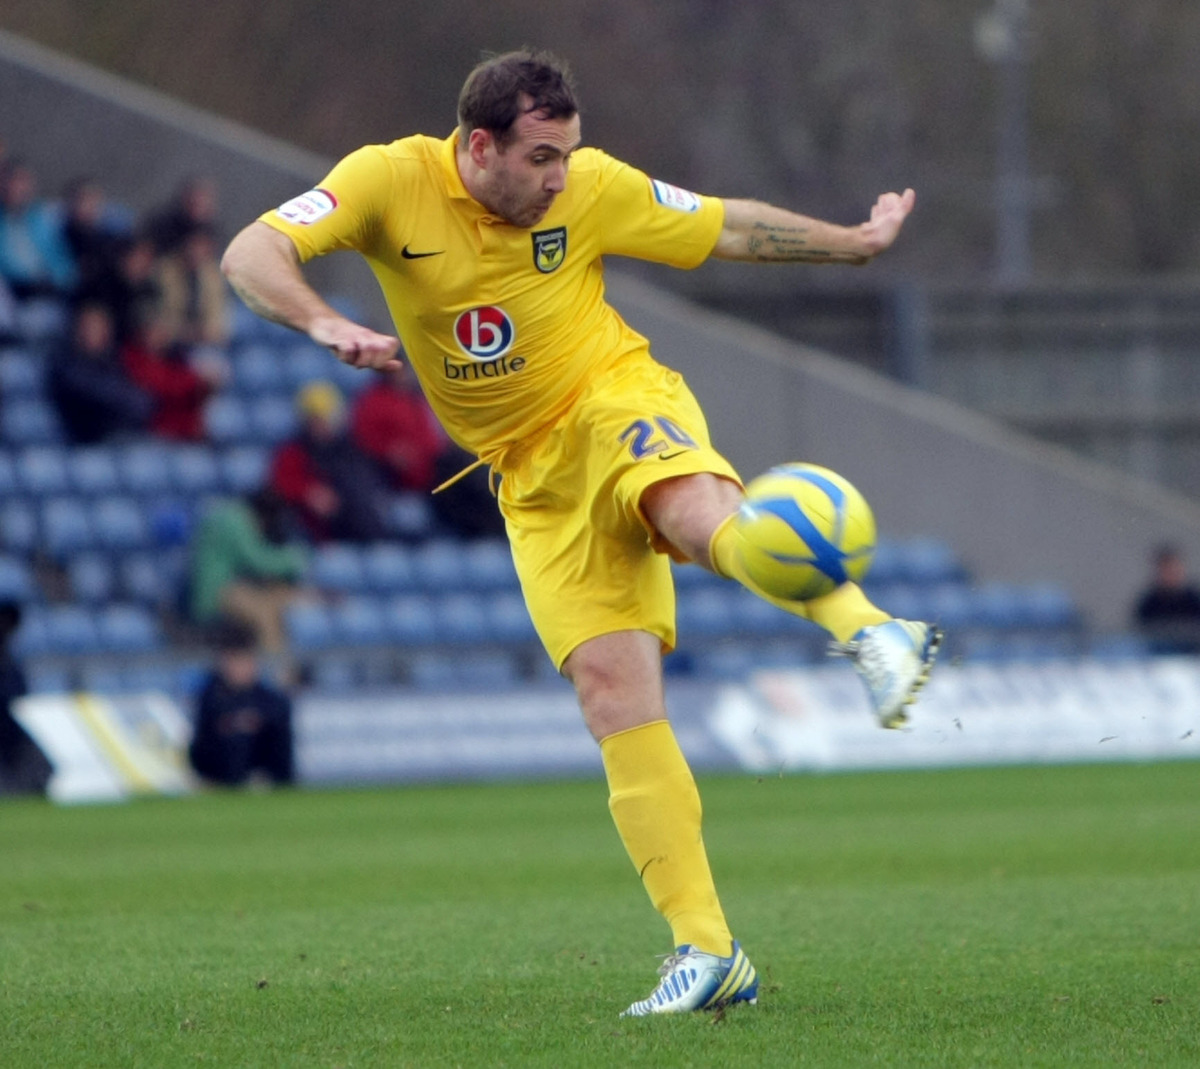 Peter Leven demonstrated his quality, but it was injuries that ultimately led to his departure from Oxford United